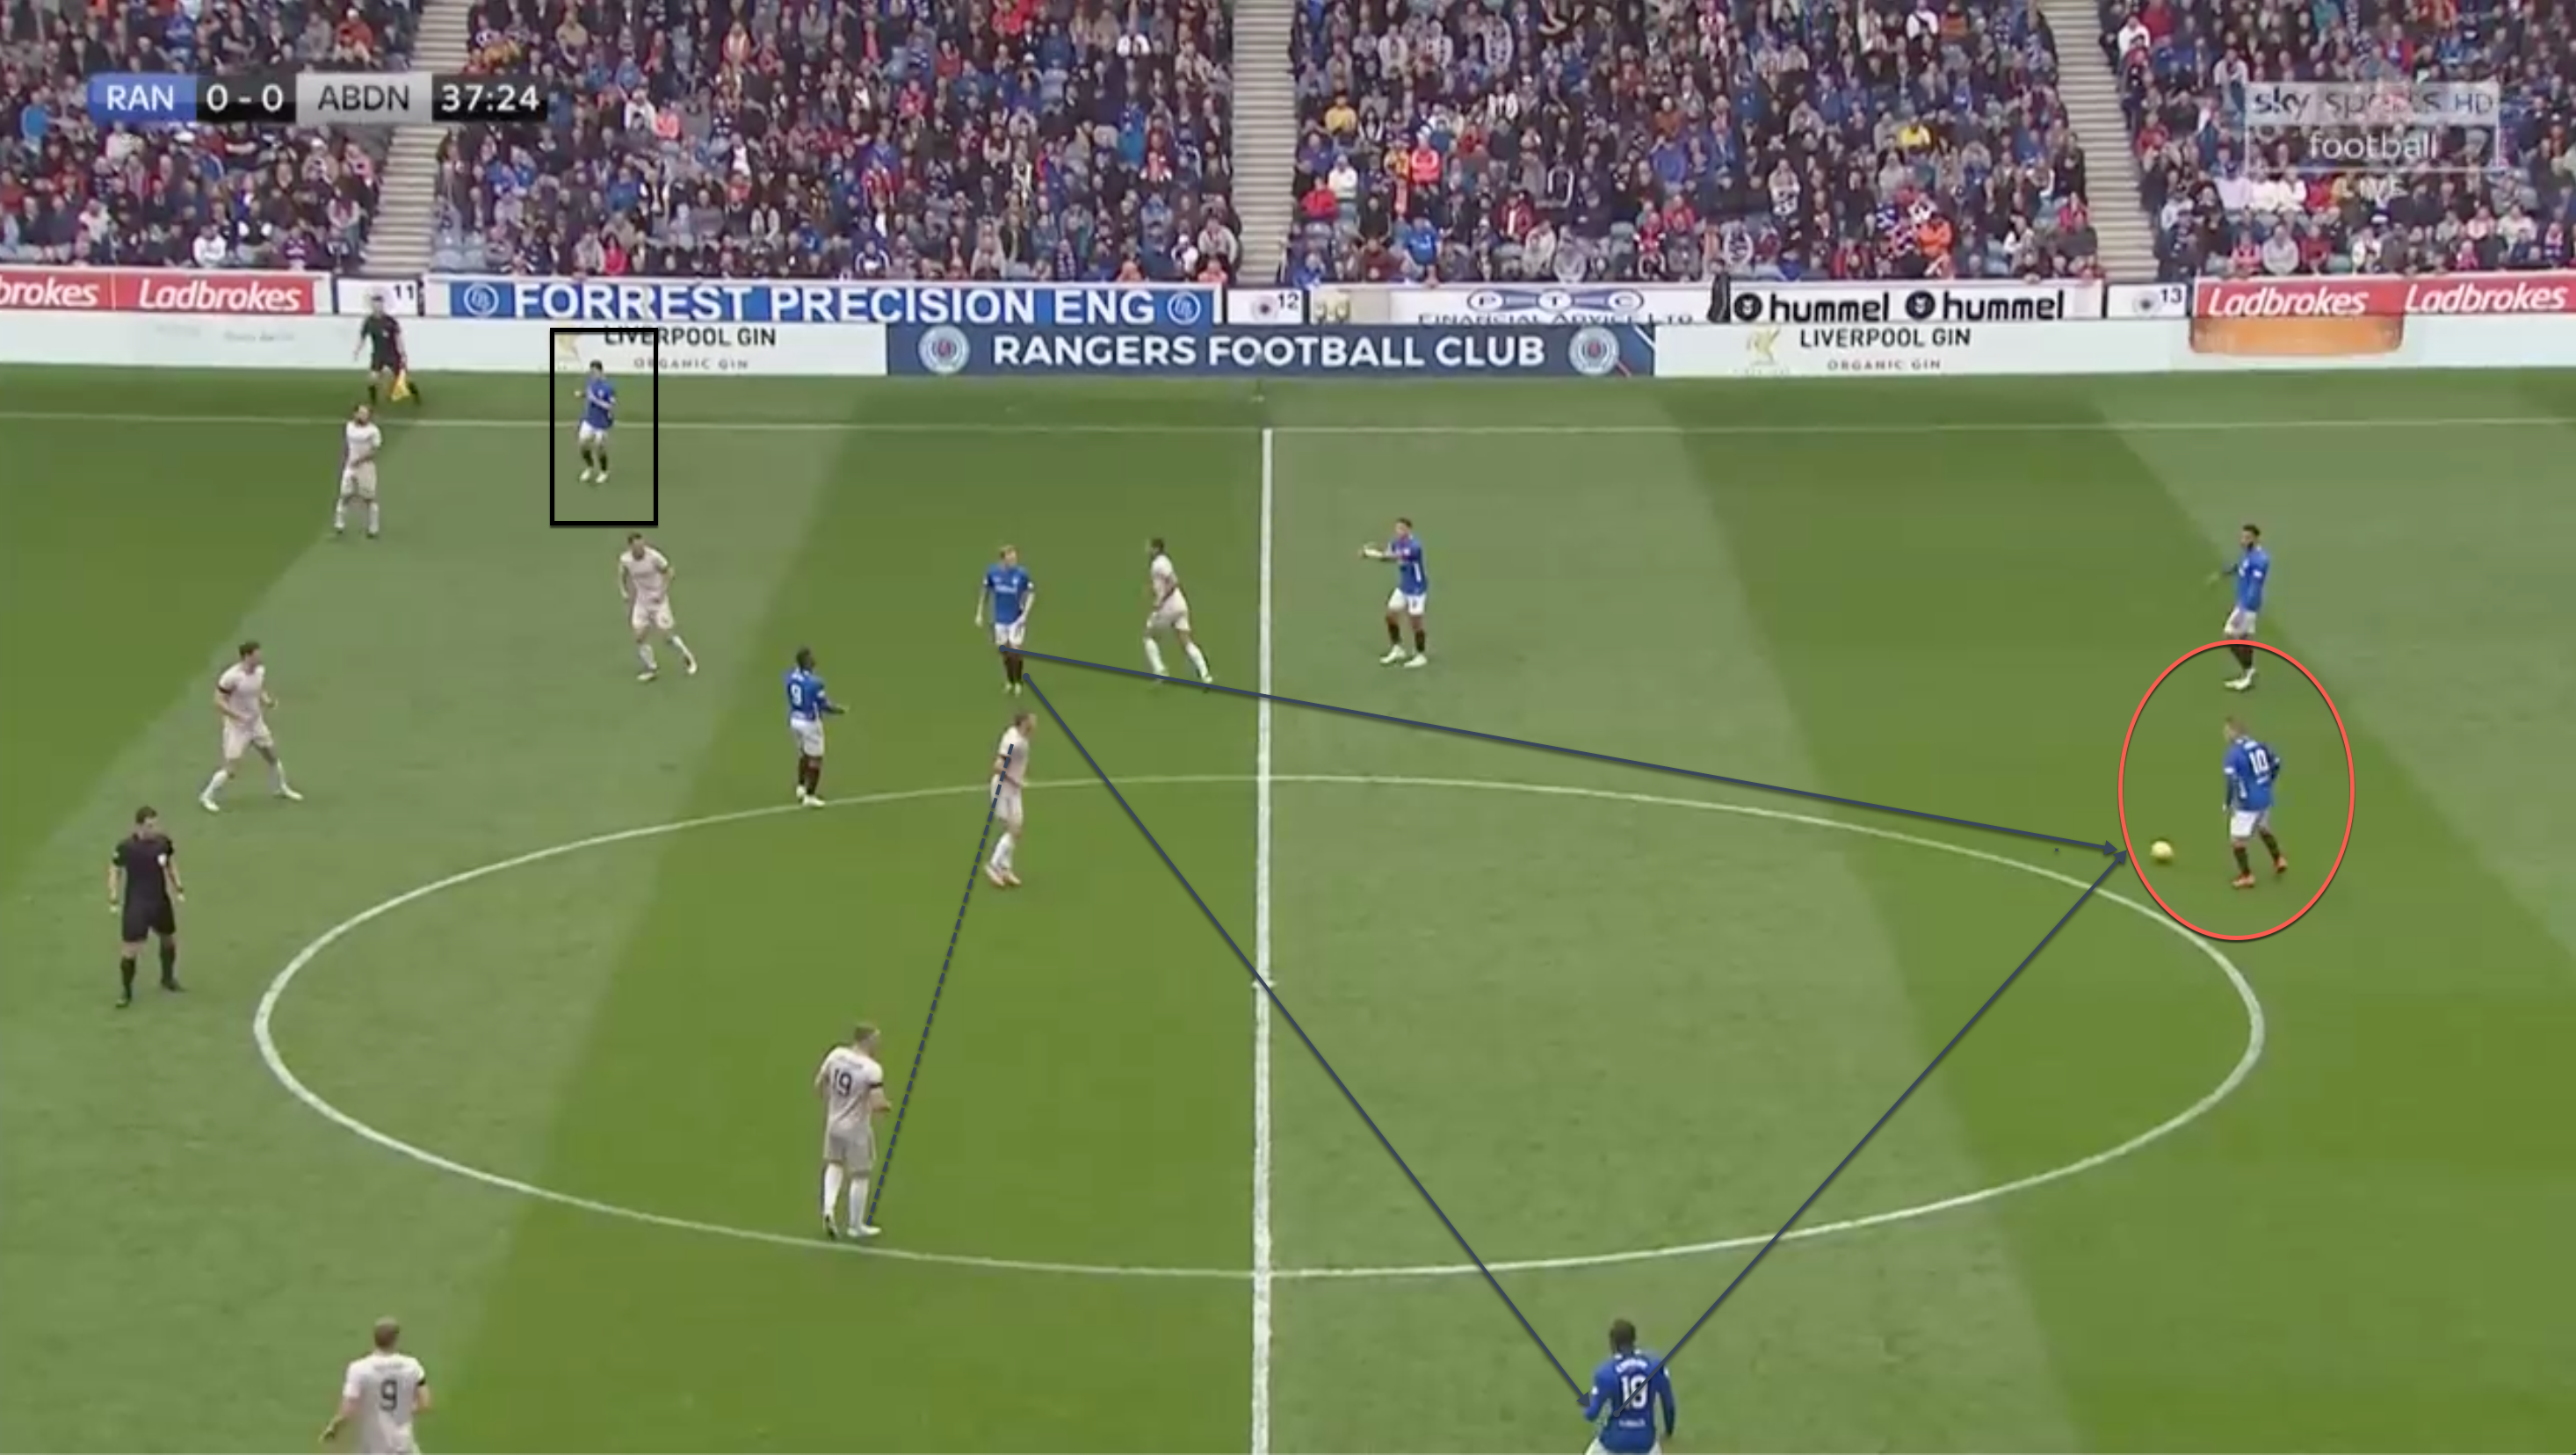 Rangers Aberdeen Scottish Premiership Tactical analysis statistical analysis talking points